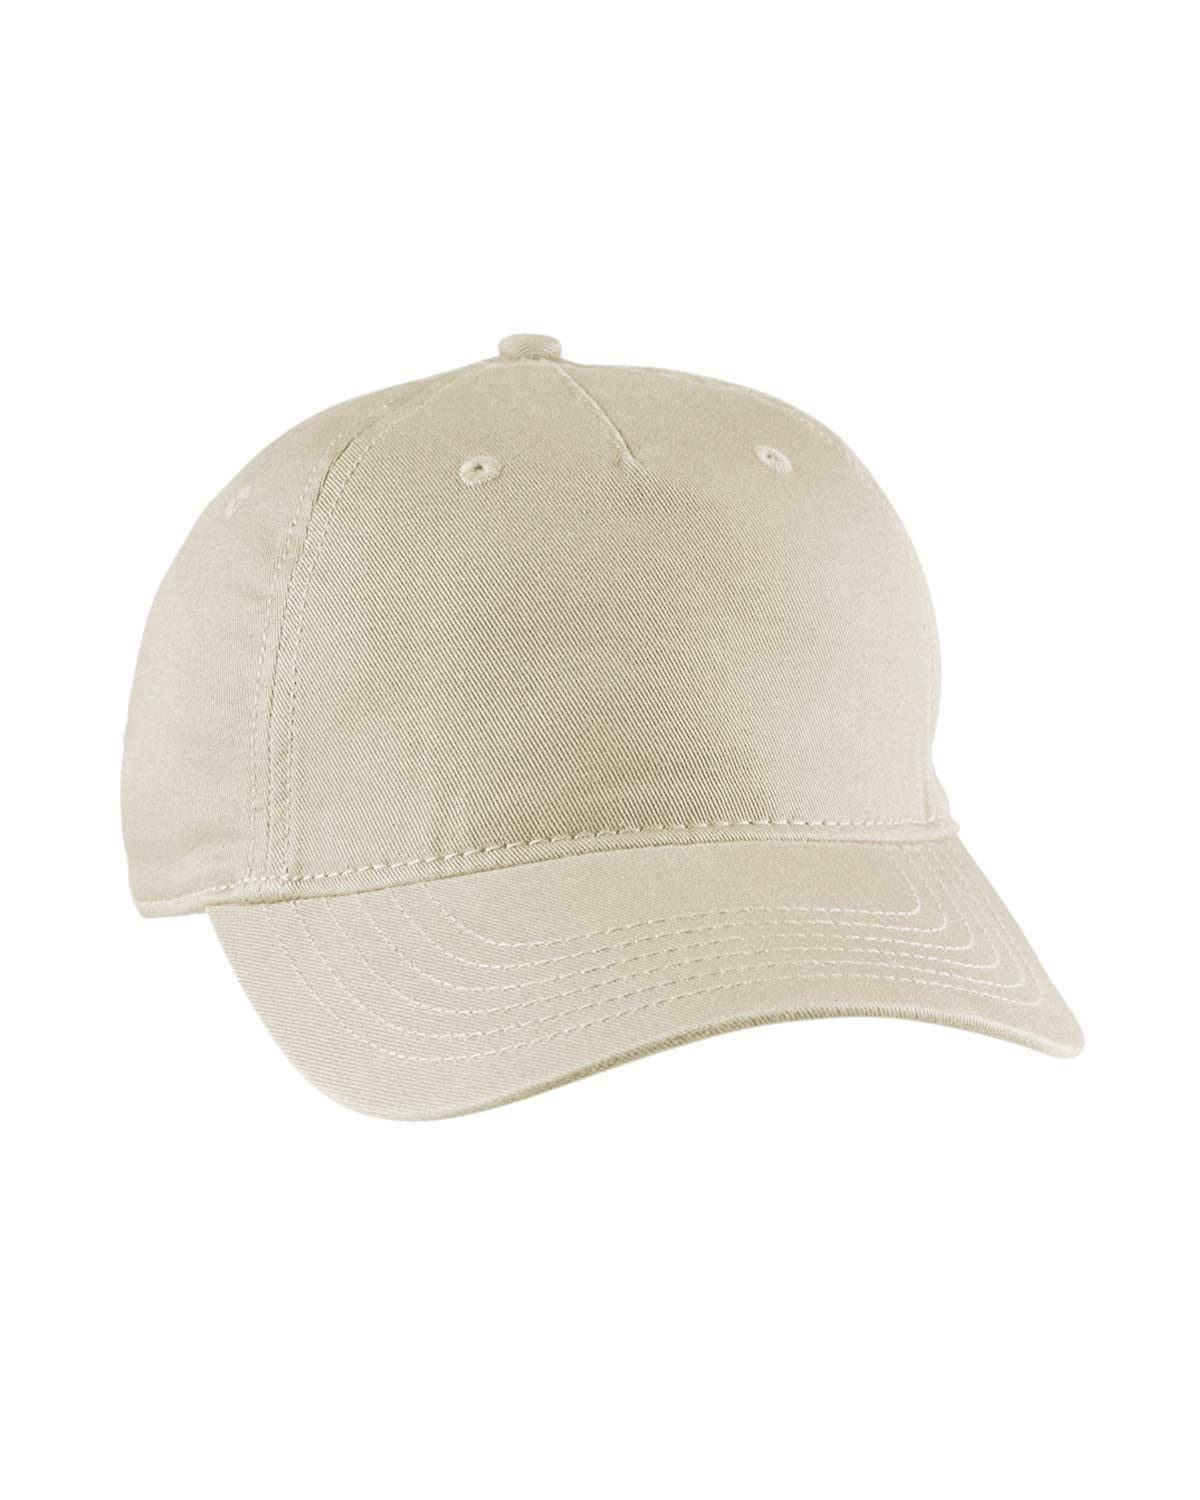 7eb0c6d0fa5df Amazon.com  econscious Men s Twill 5-Panel Unstructured Hat